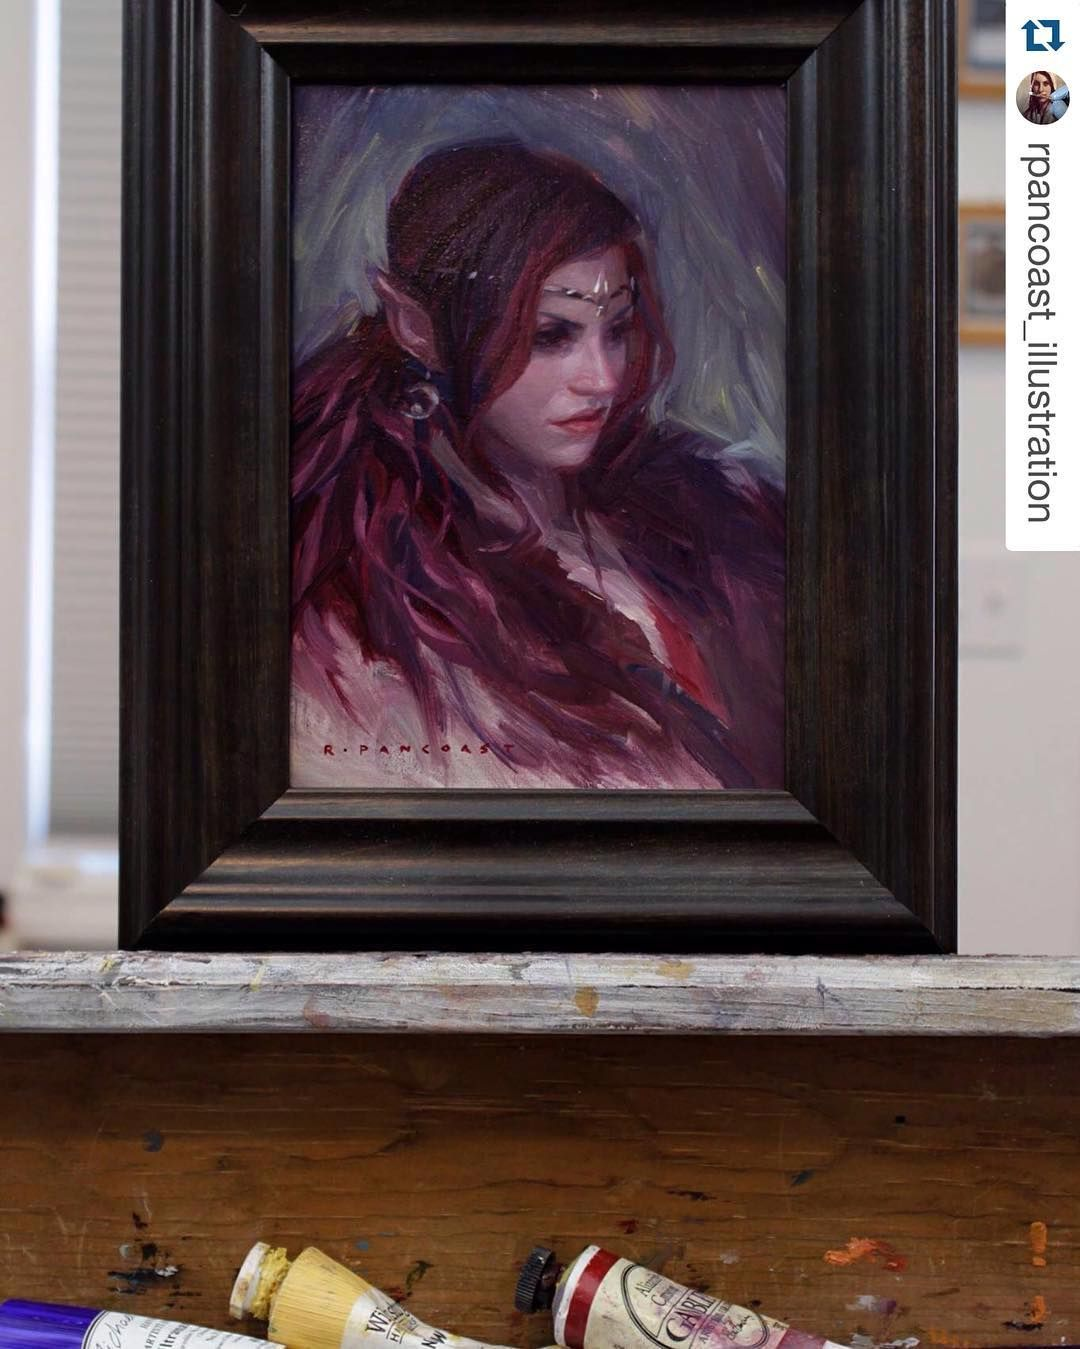 Posted by everydayorig : Today's #everydayoriginal is a brand new gorgeous oil painting from @rpancoast_illustration. Be sure to check it out Moon Elf on http://ift.tt/1BcdOeO  For sale @everydayorig ! #art #painting #oilpainting #drawing #illustration #elf #portrait